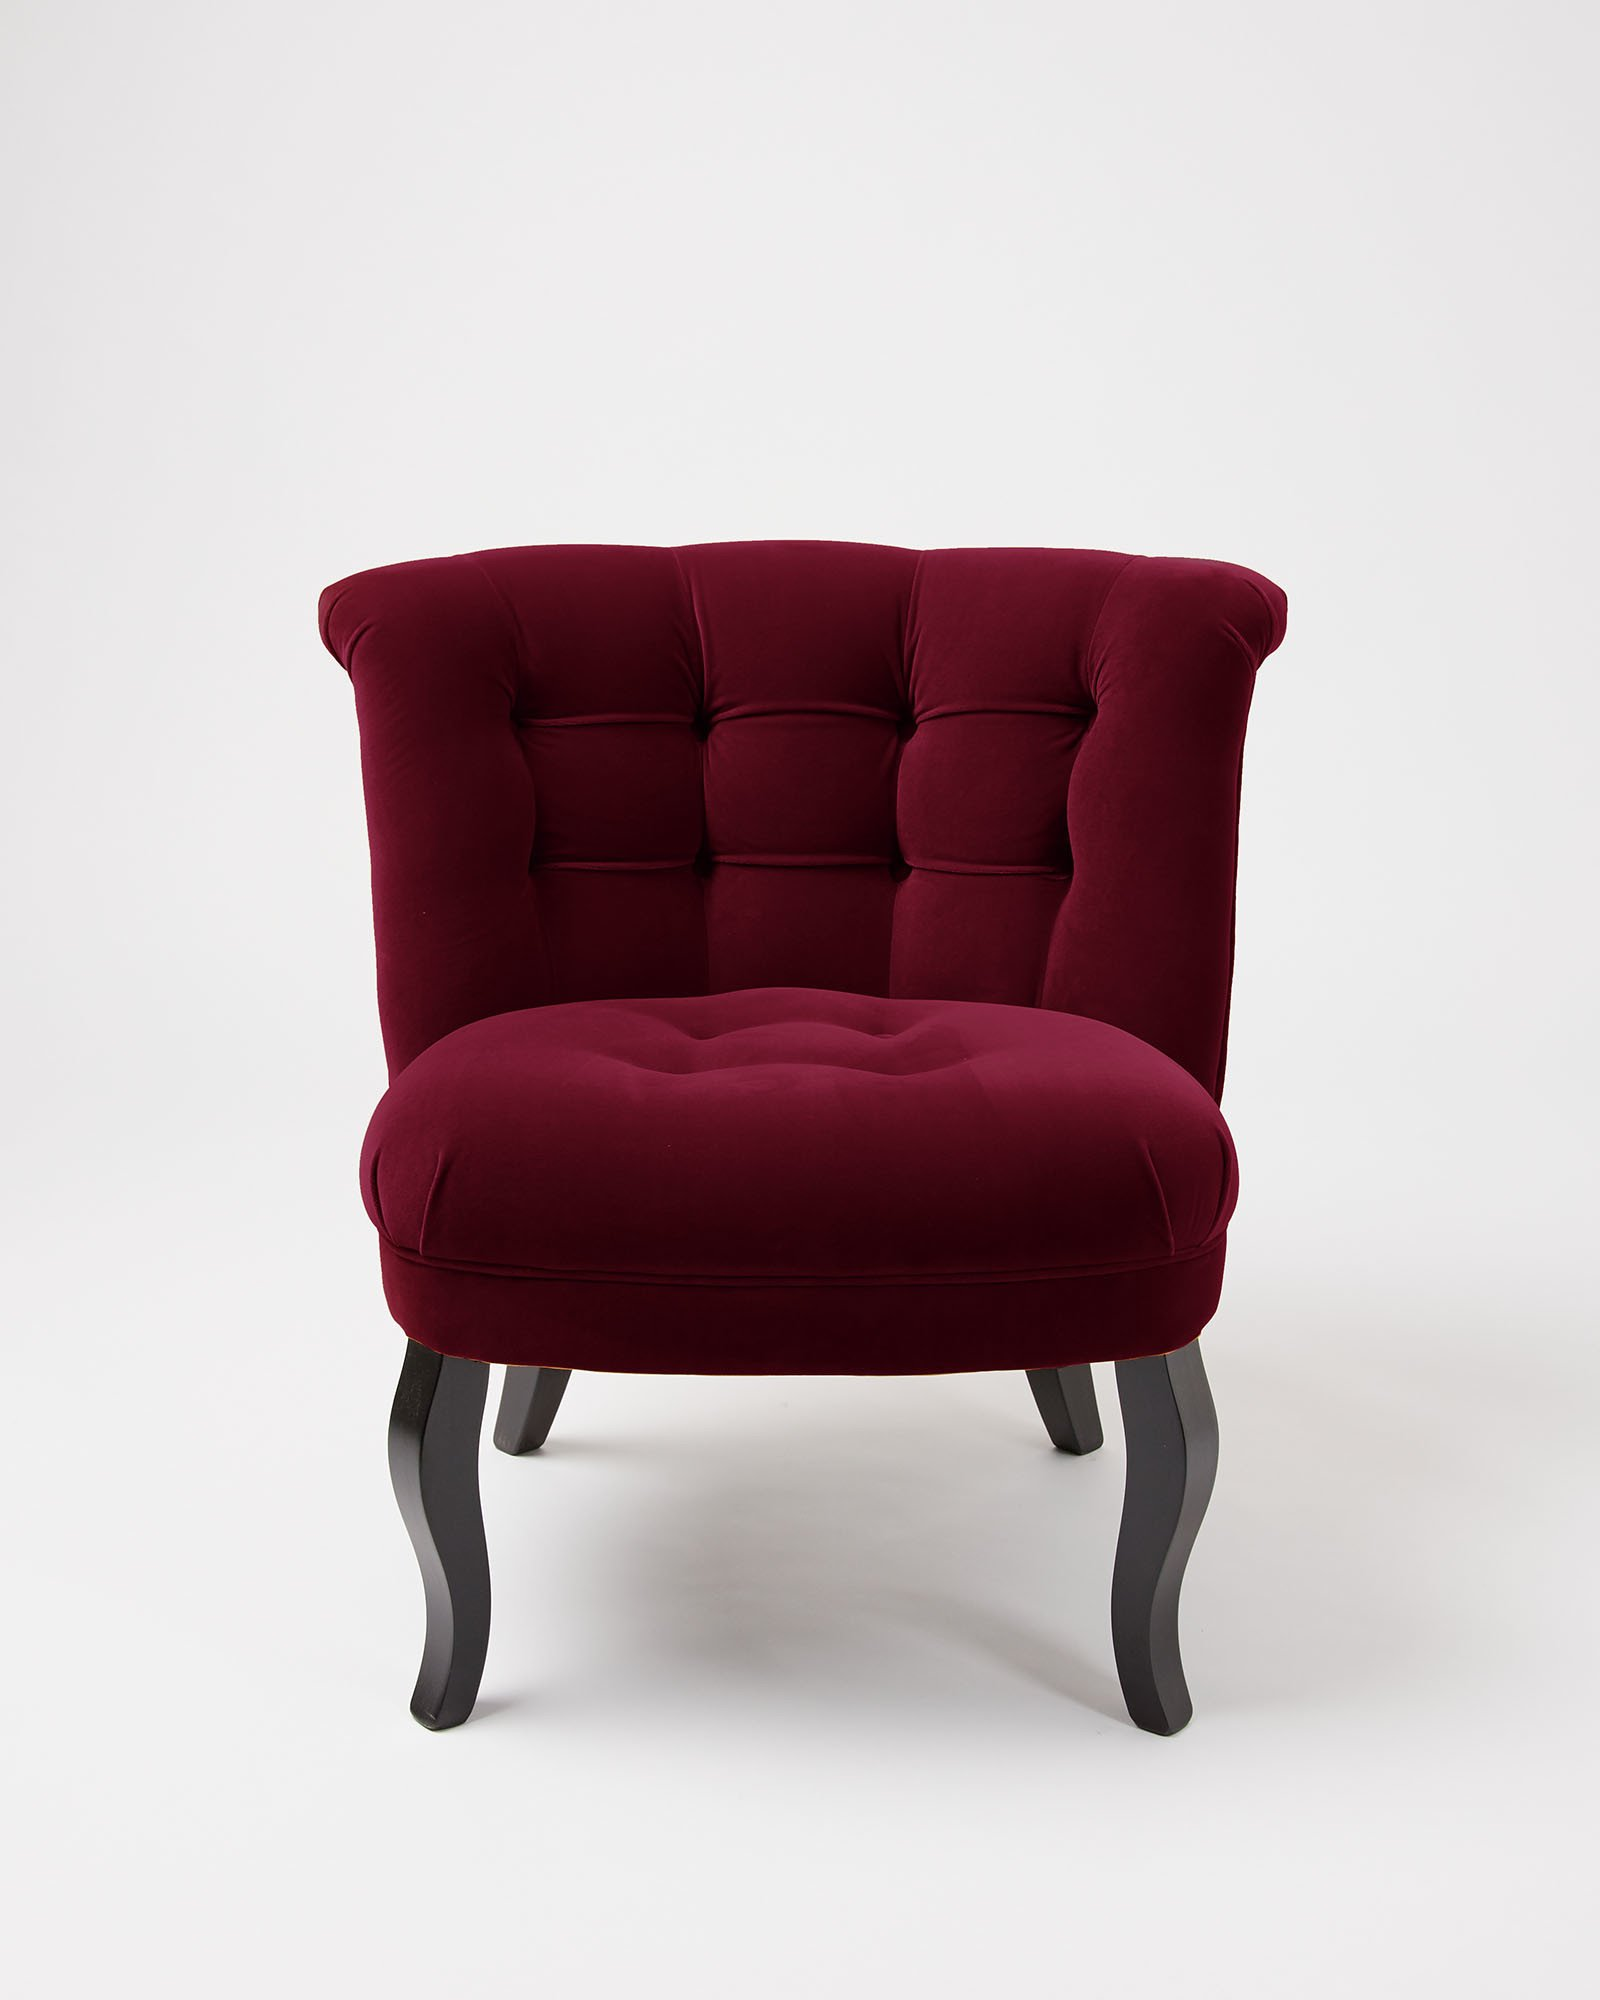 Velvet Mulberry Red Tub Chair